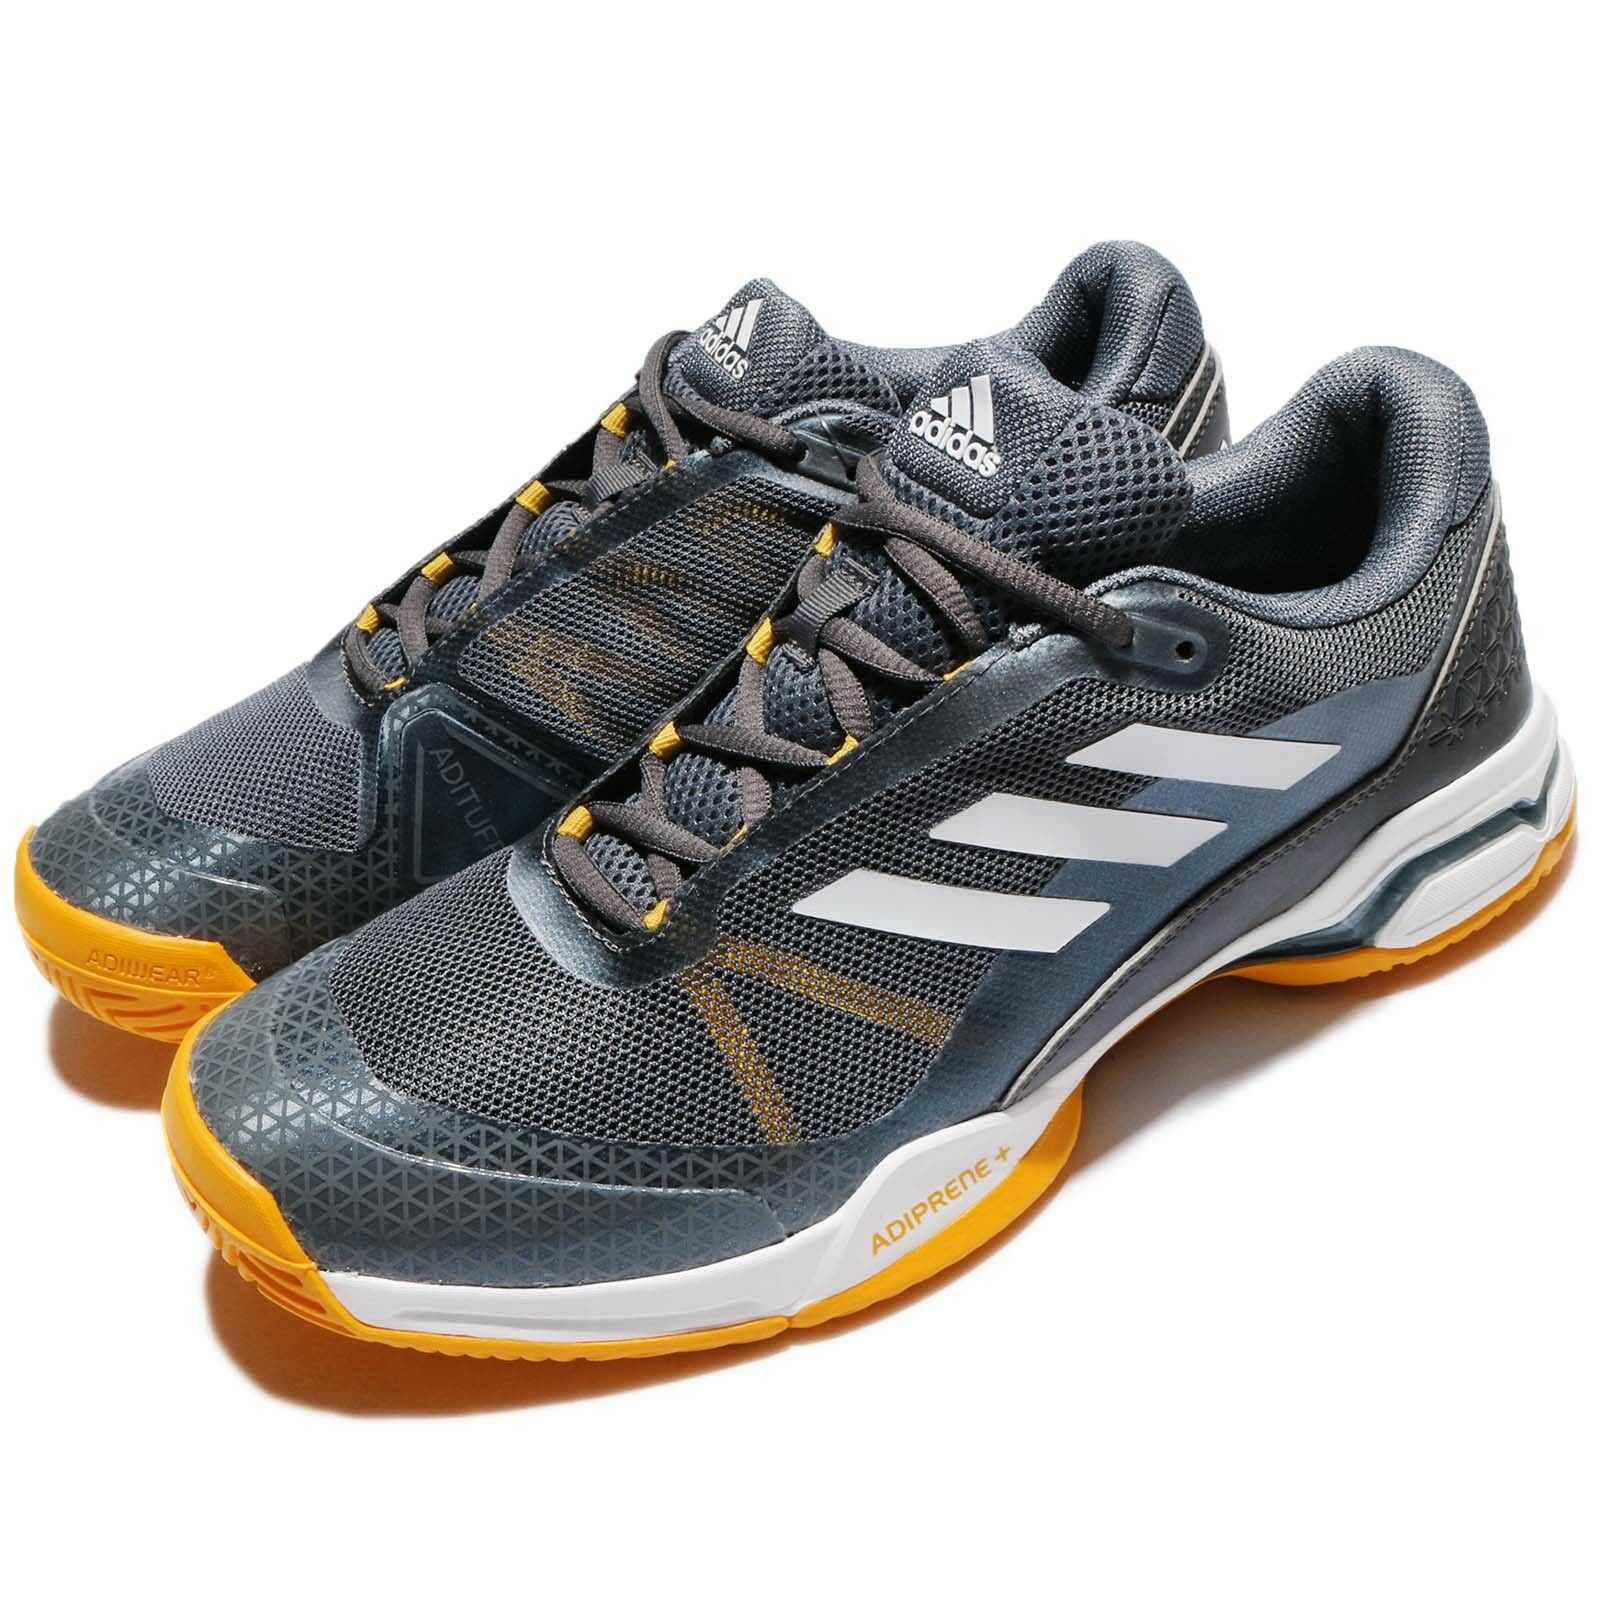 75518470b6478 NEW Adidas Barricade Club Silver Silver Silver Yellow White Men Tennis  Shoes Sneakers BY1638 af0739